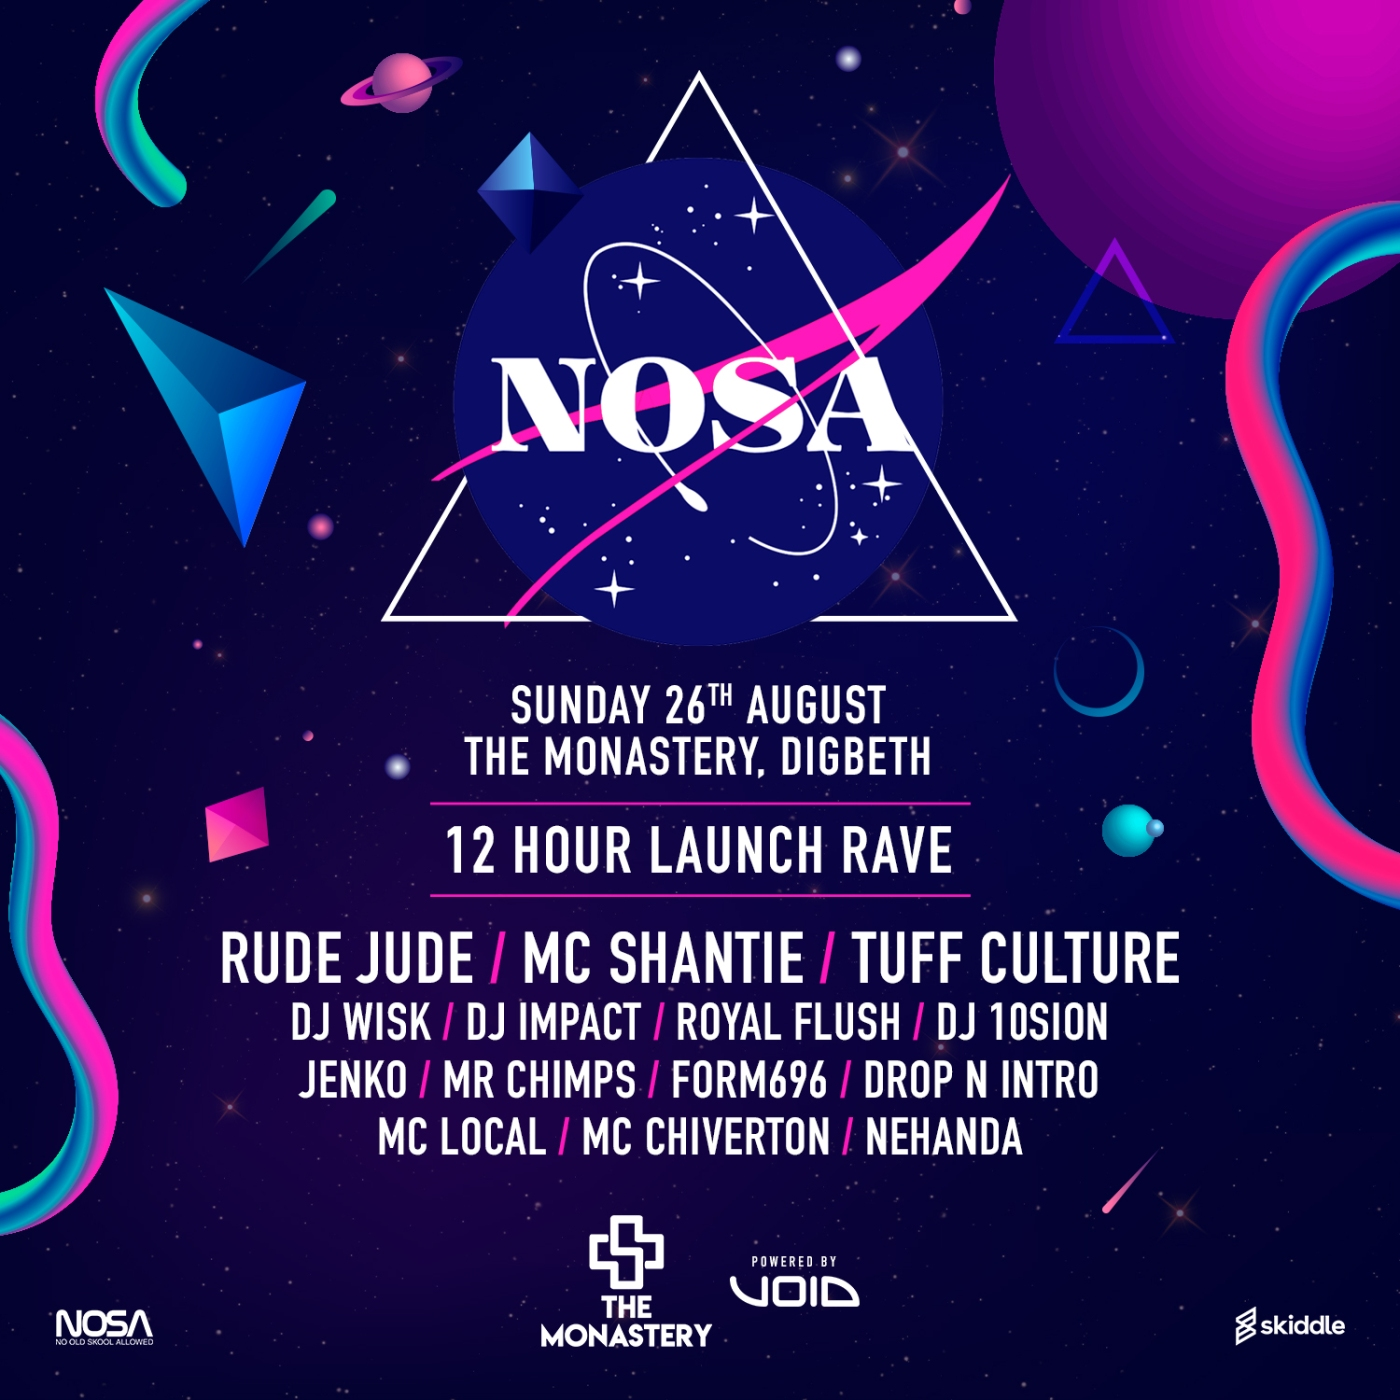 nosa, no old skool allowed, ukg, uk garage, garage, bass, bassline, bass house, monastery, digbeth,rude jude, shantie, mc shangie, rinse fm, tuff culture, dj wisk dj impact, flex fm, royal flush, dj 10sion, jenko, mr chimps, form696, mc local, chiverton, nehander, birmingham